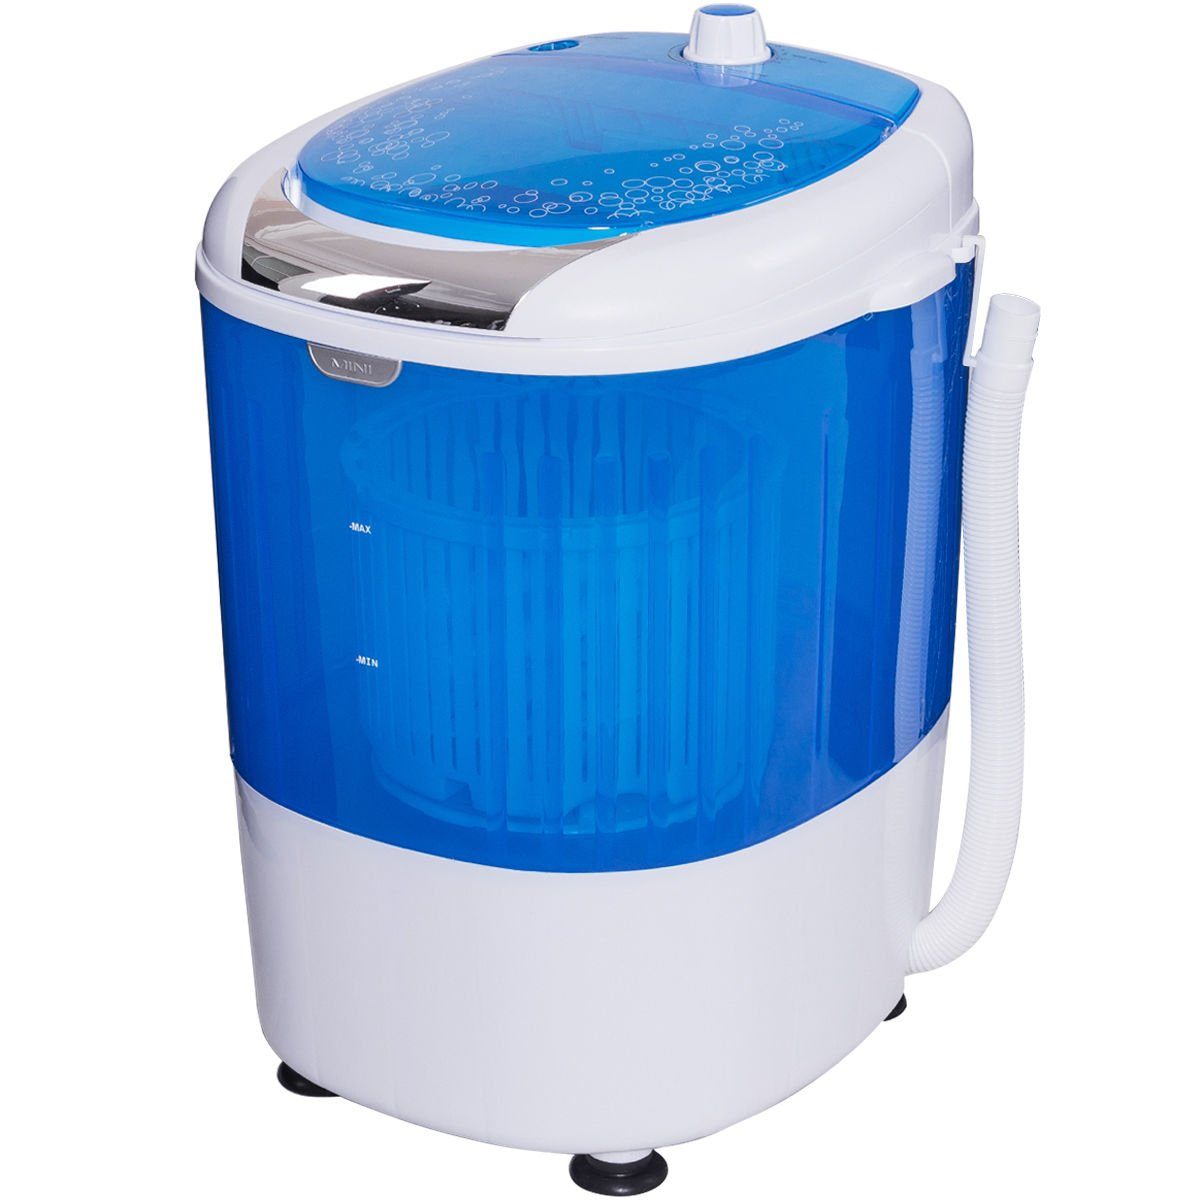 Costway Washing Machine Electric Compact Laundry Machines